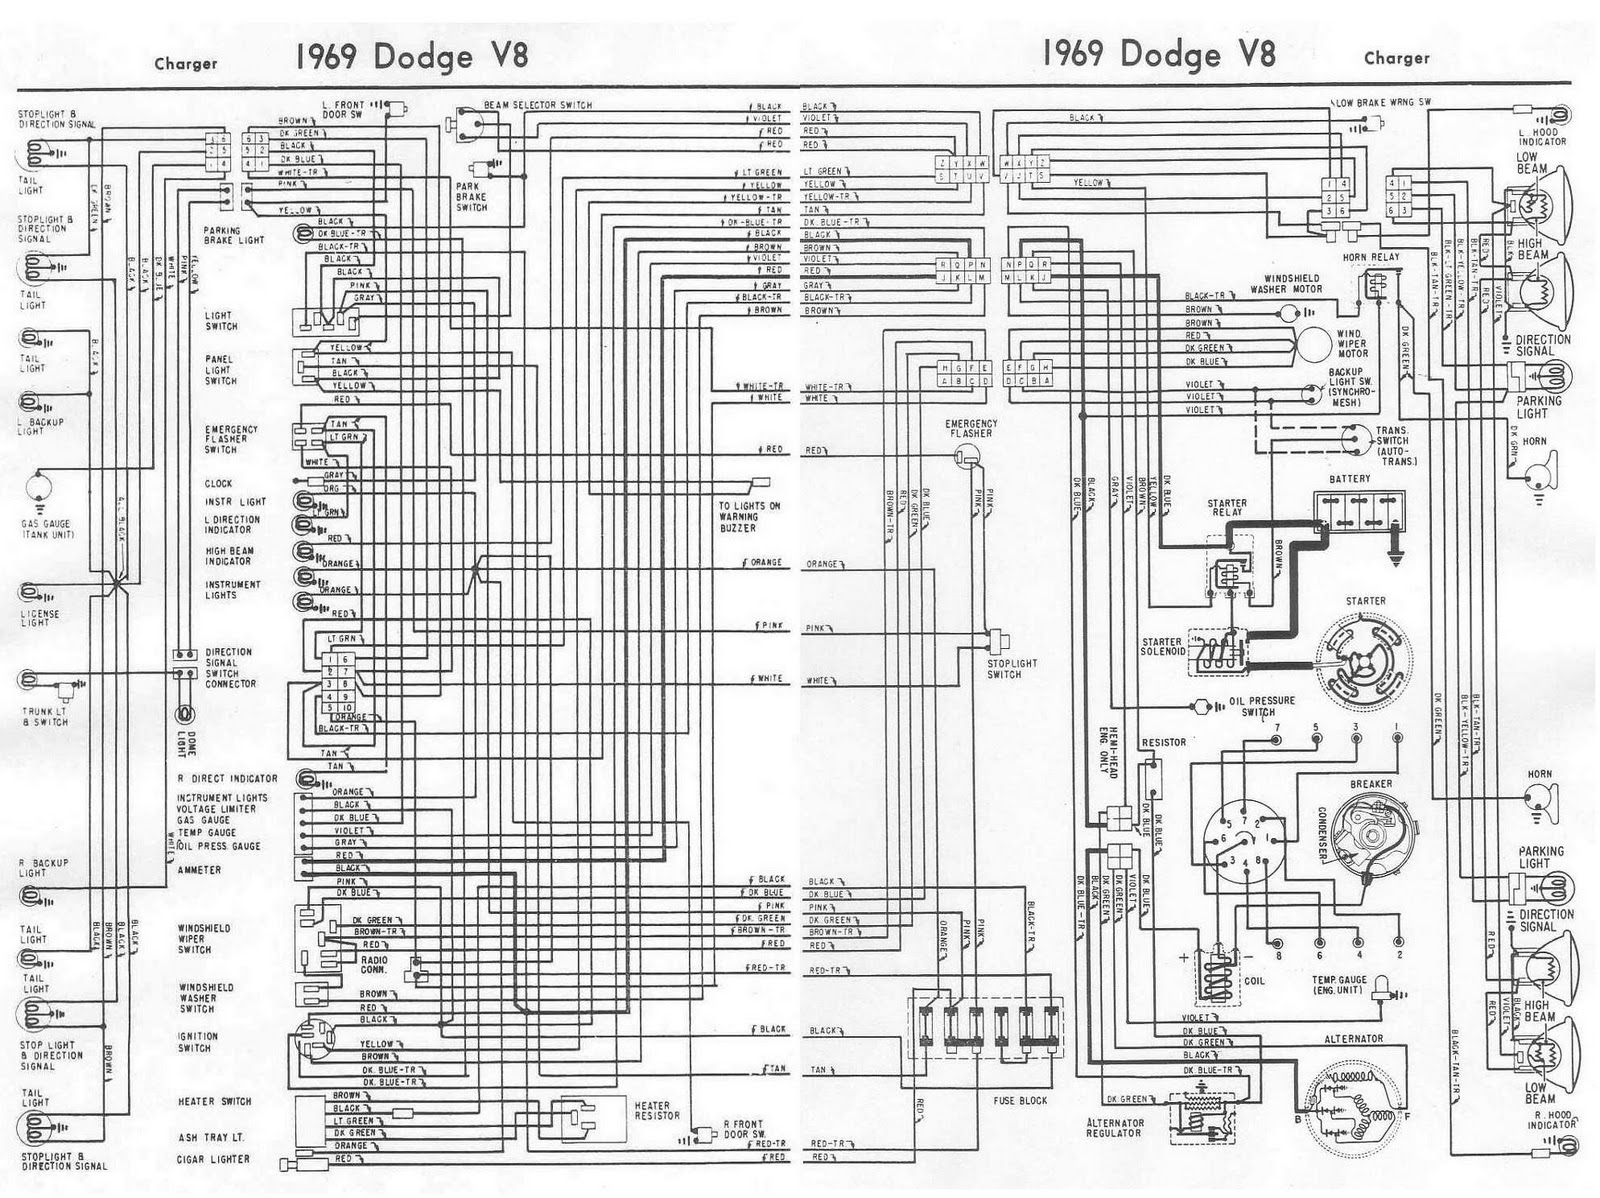 1970 dodge challenger rallye dash color wiring diagram ... wiring diagram for 1970 dodge challenger ac wiring diagram for 1970 chevelle #9